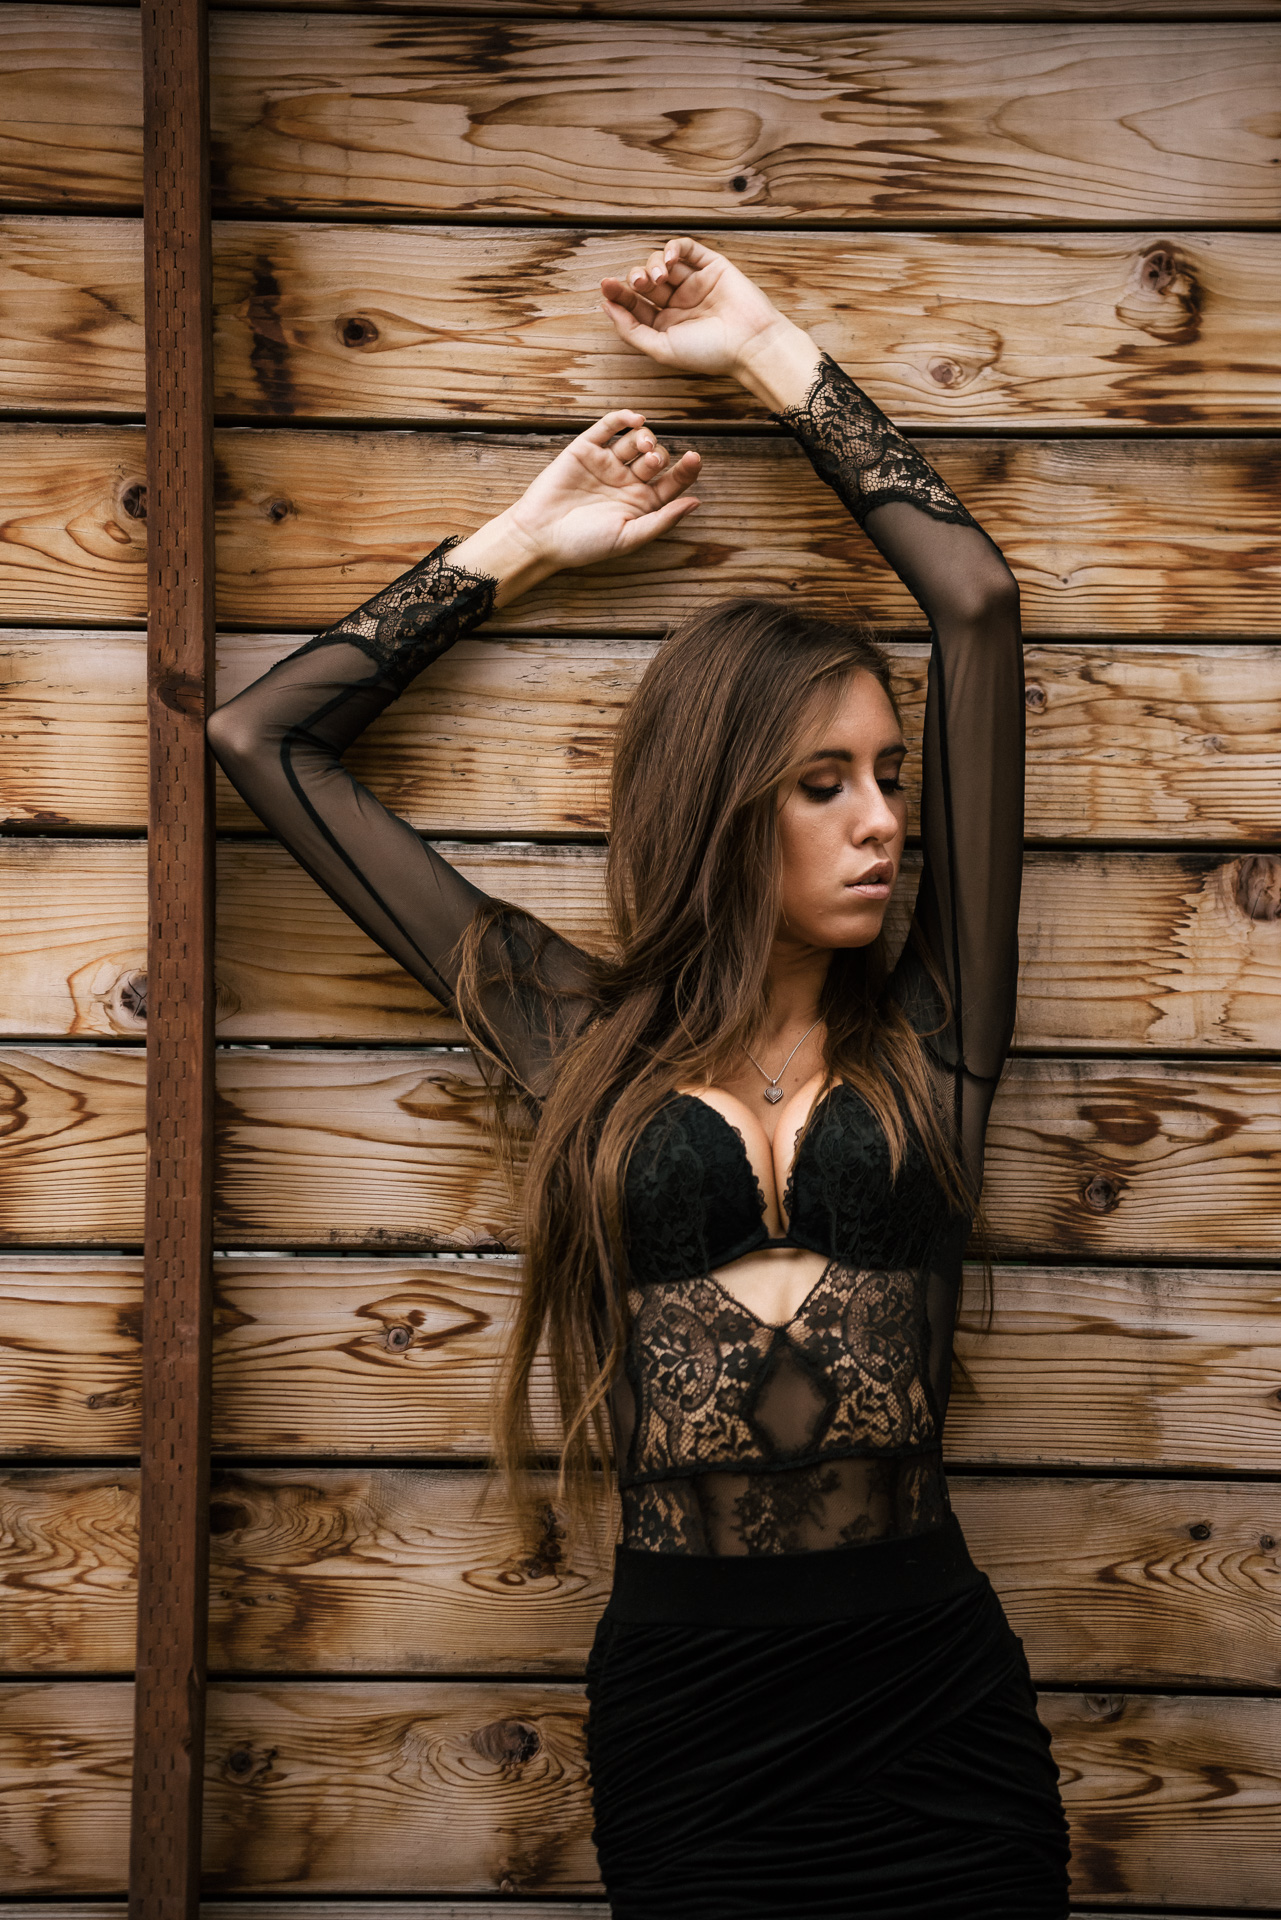 beautiful model in black lace poses against textured wooden wall at The Hungarion Brunette Lingerie as outerwear fashion photoshoot in Venice Beach California